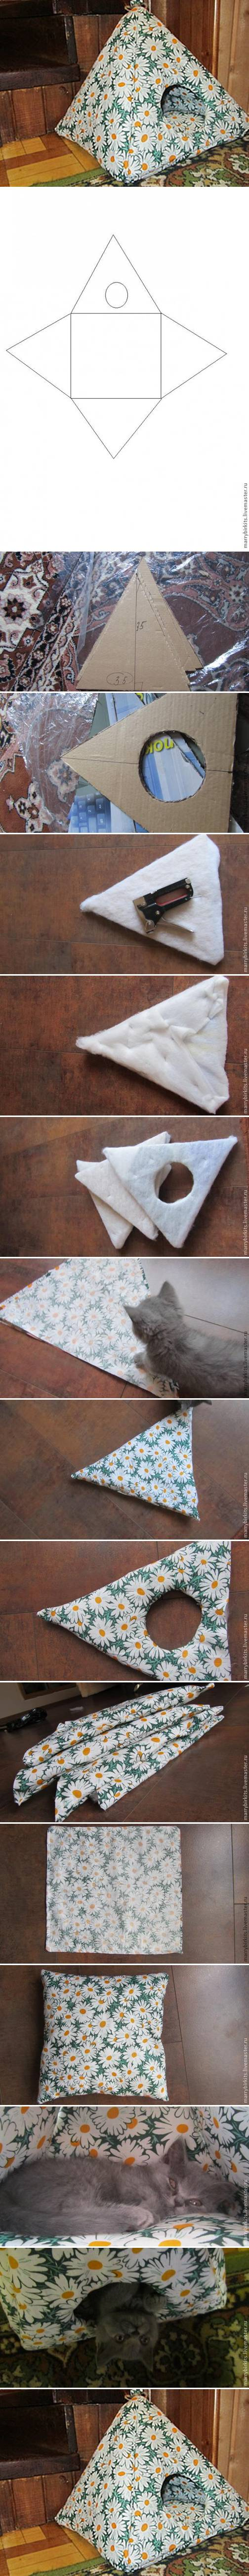 How to Make Cat house step by step DIY tutorial instructions